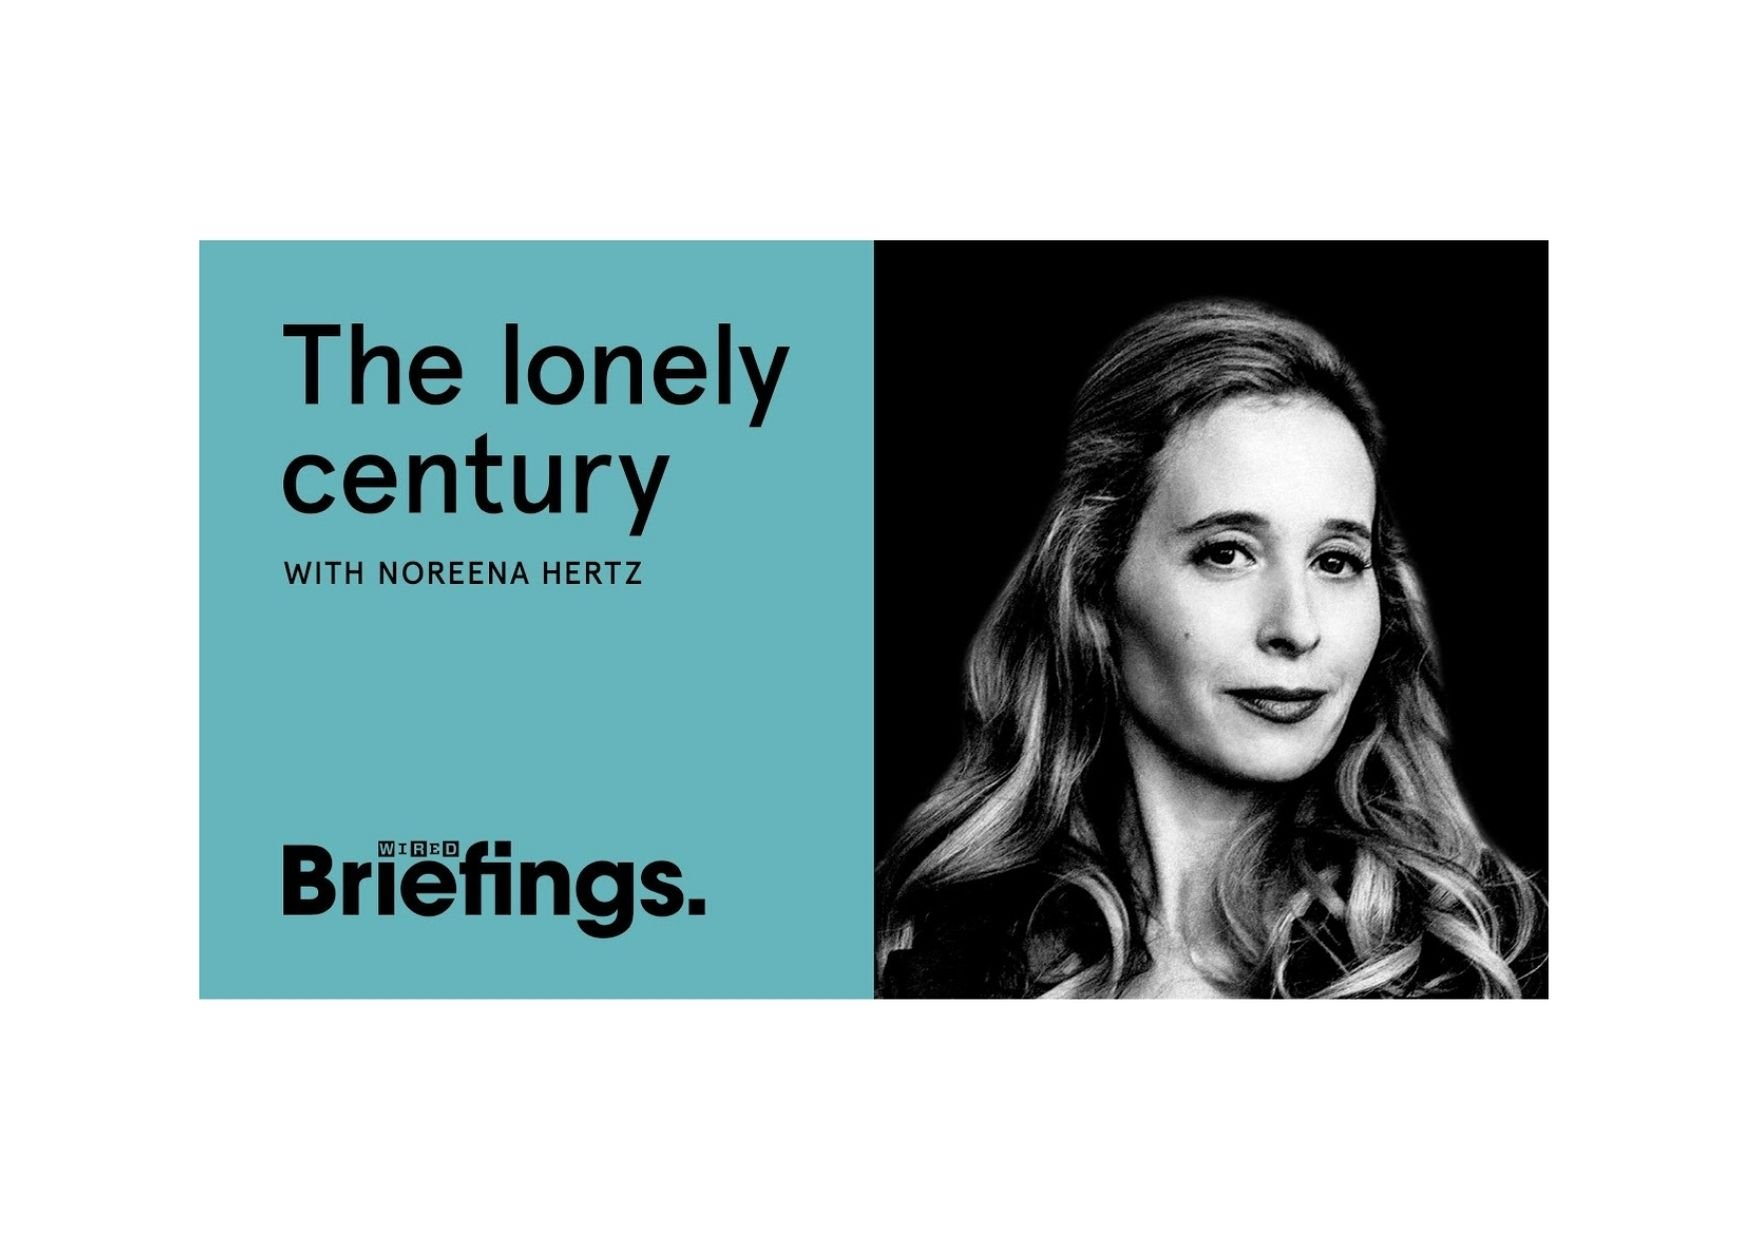 The Lonely Century in WIRED Briefings